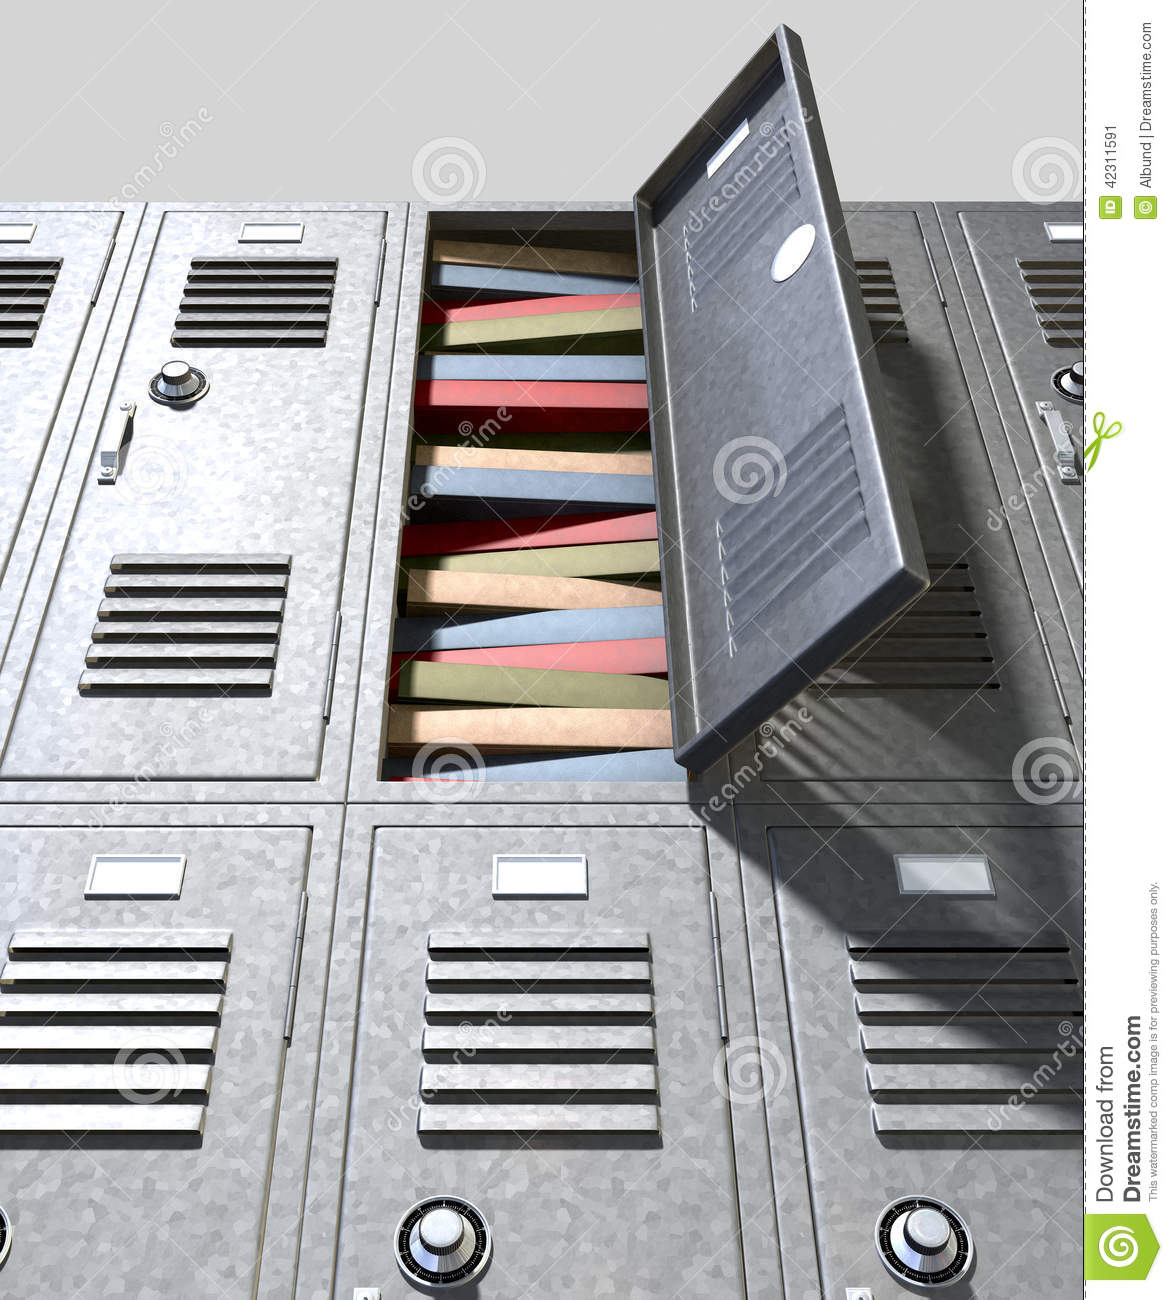 School Locker Crammed Books Stock Image Image Of Pile